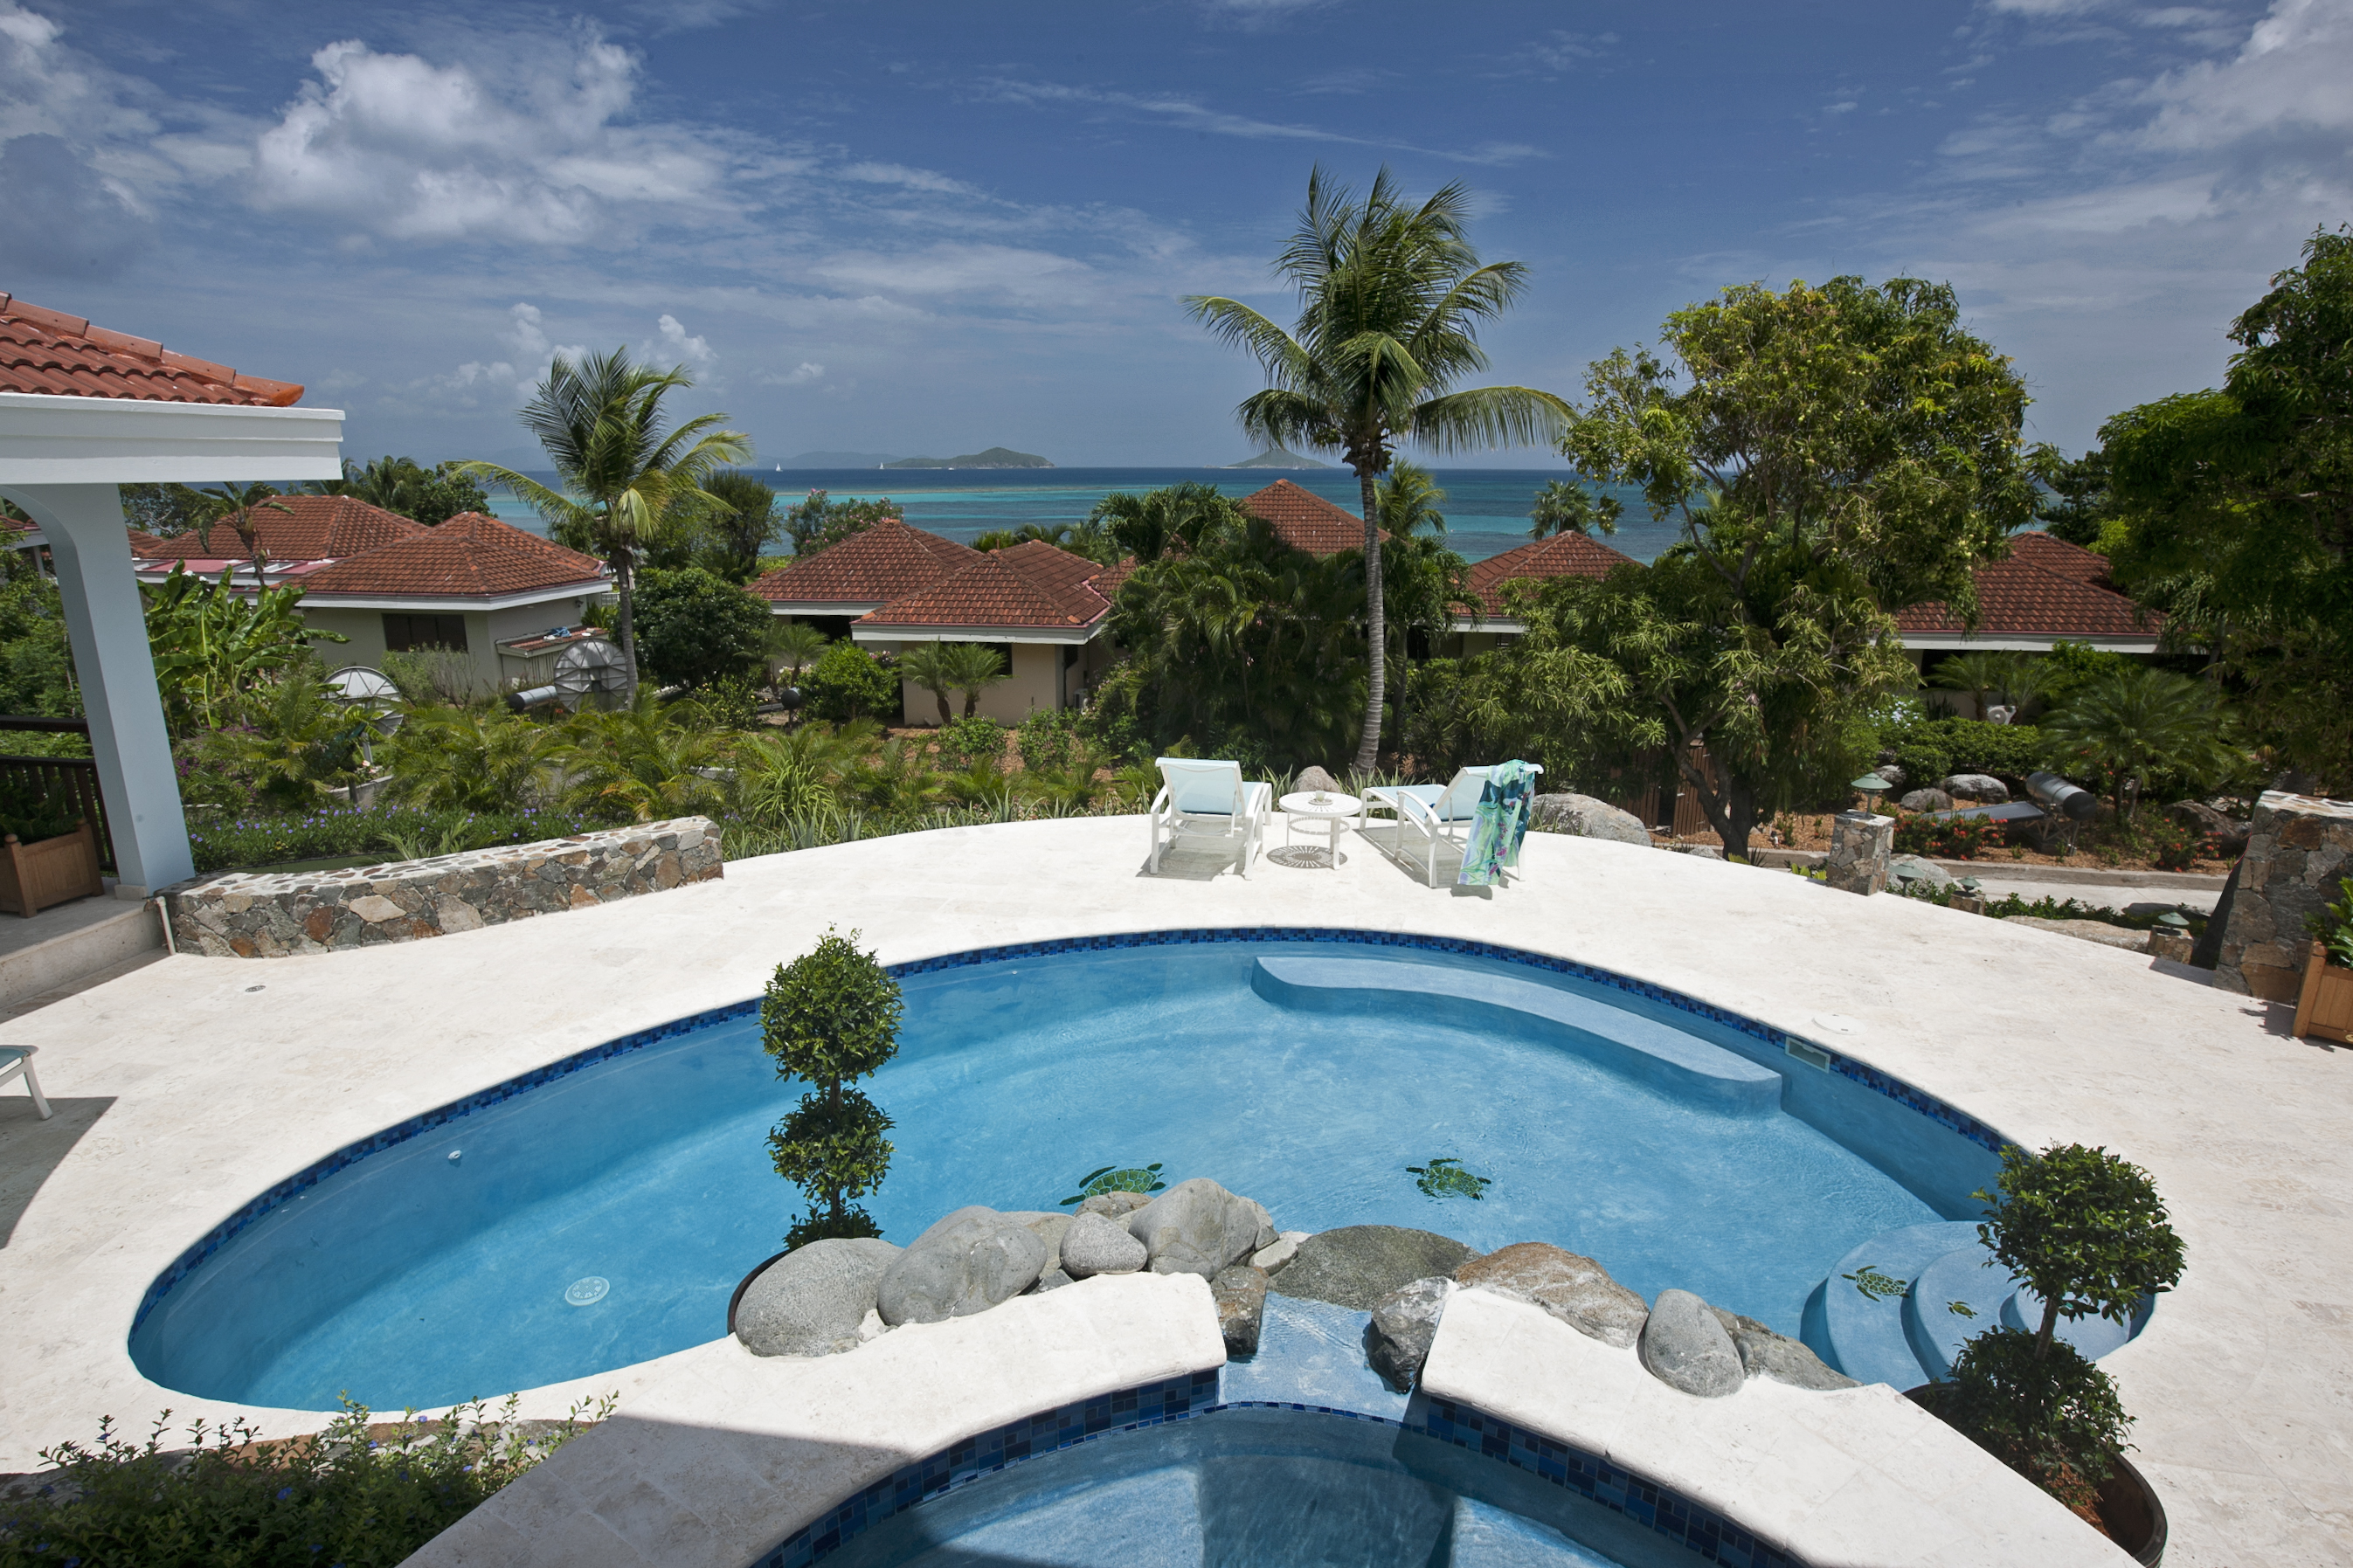 Blue Lagoon Villa, Virgin Gorda, BVI